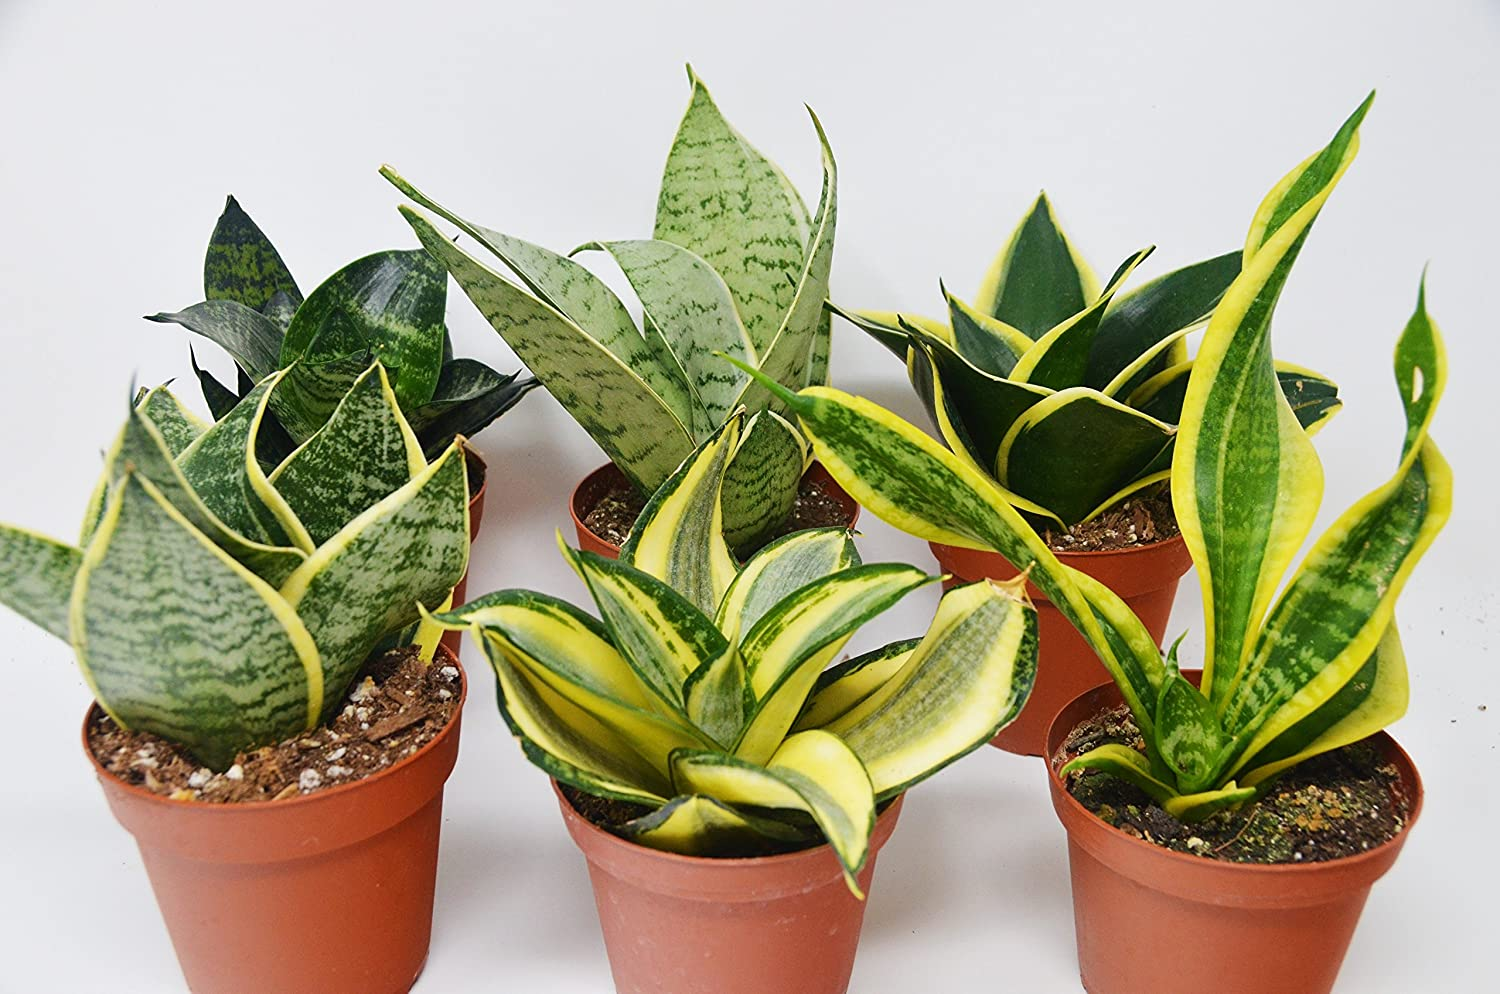 6 Different Snake Plants in 4 Pots Sansevieria Live Plant FREE Care Guide